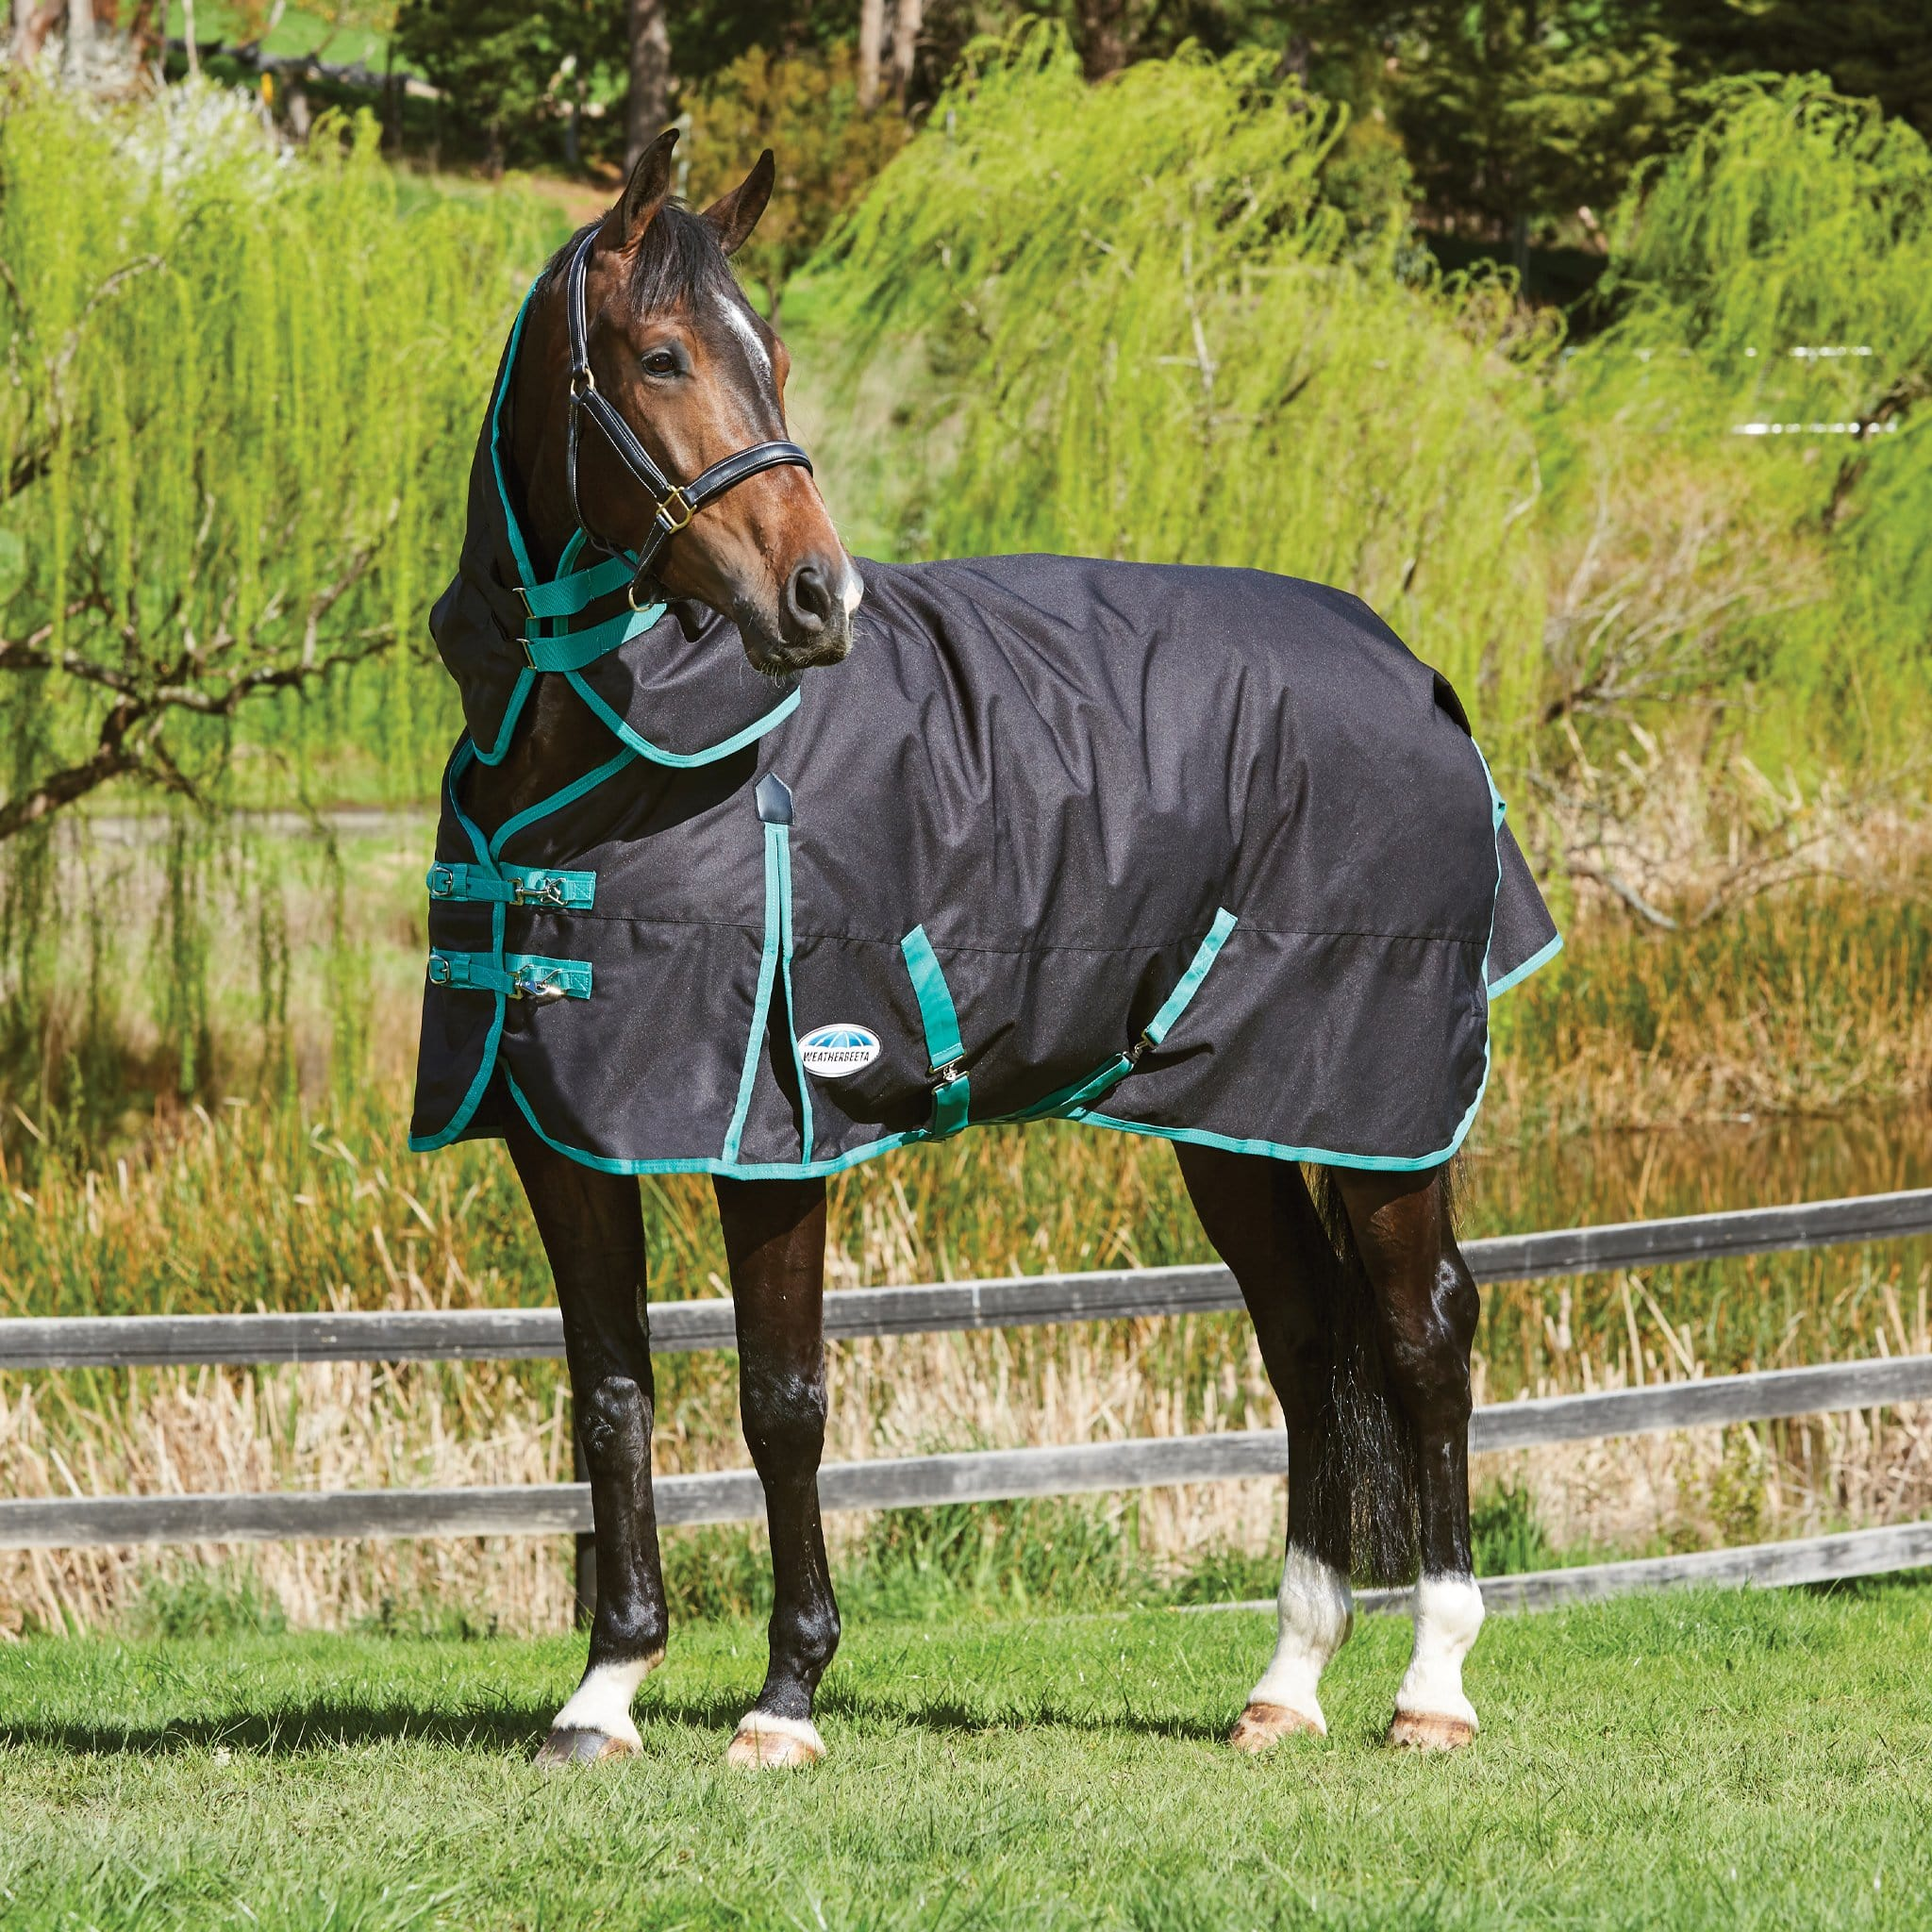 Weatherbeeta Green-Tec Heavyweight 360g Detachable Neck Turnout Rug Black and Green 1004410001